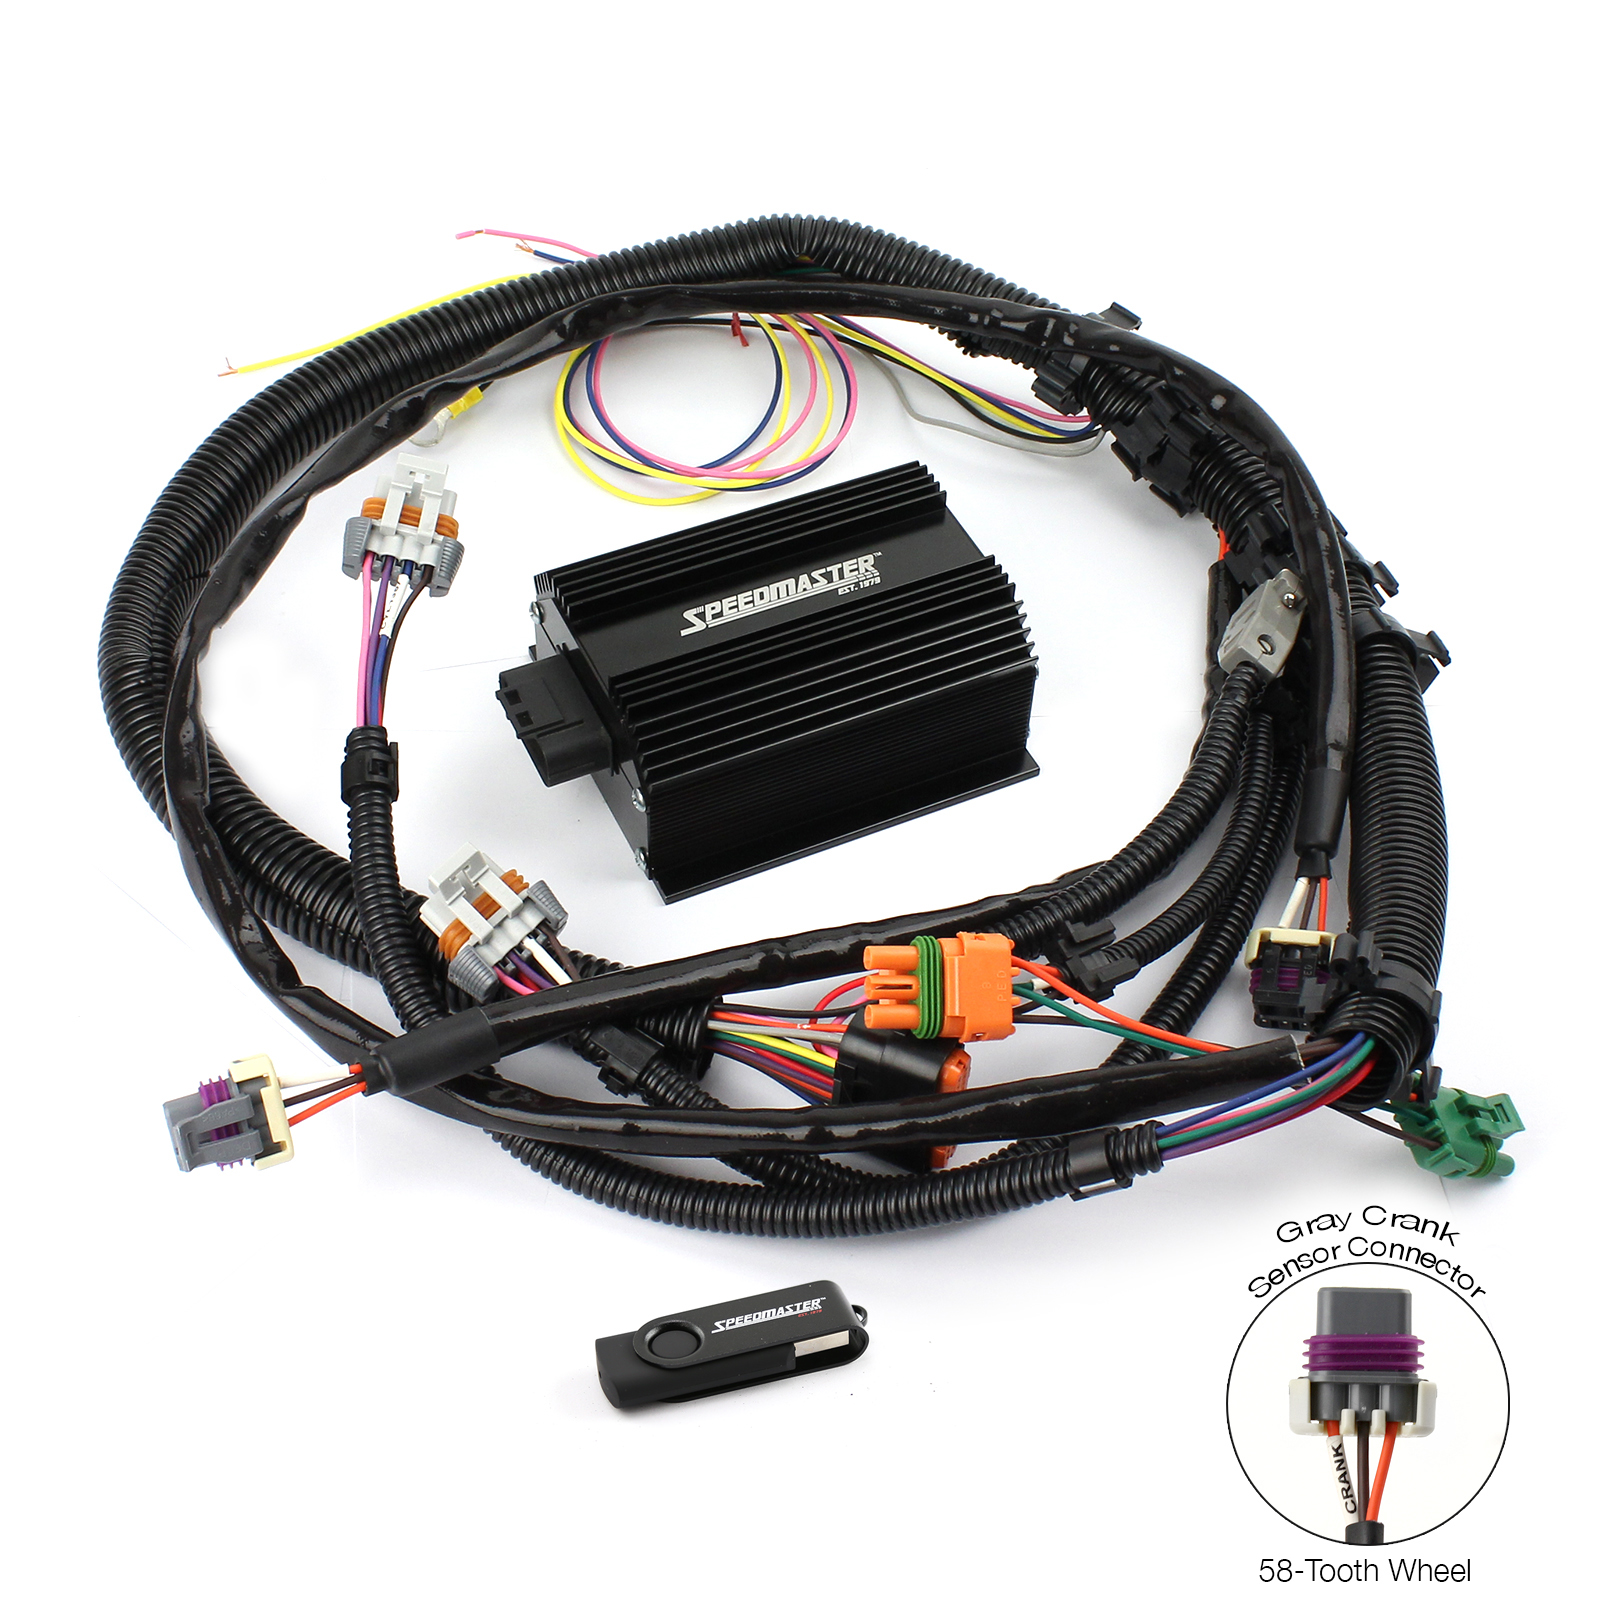 Gm Ls2 Ls7 58-Tooth Efi To Carbureted Ignition Controller Kit W/ Harness